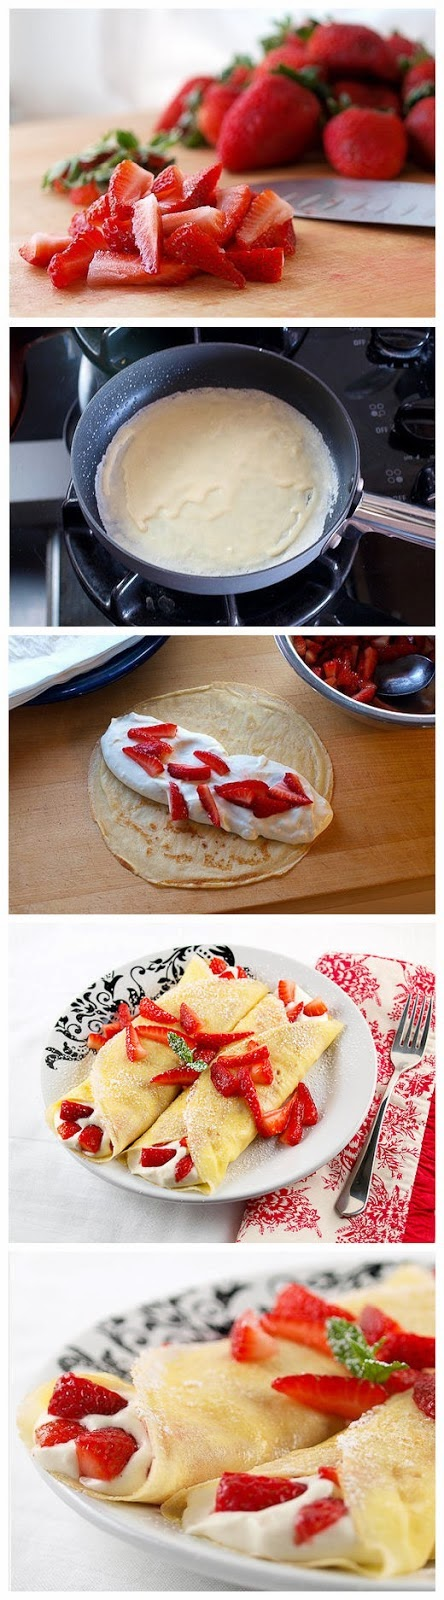 How To Make Strawberry White Chocolate Mousse Crepes